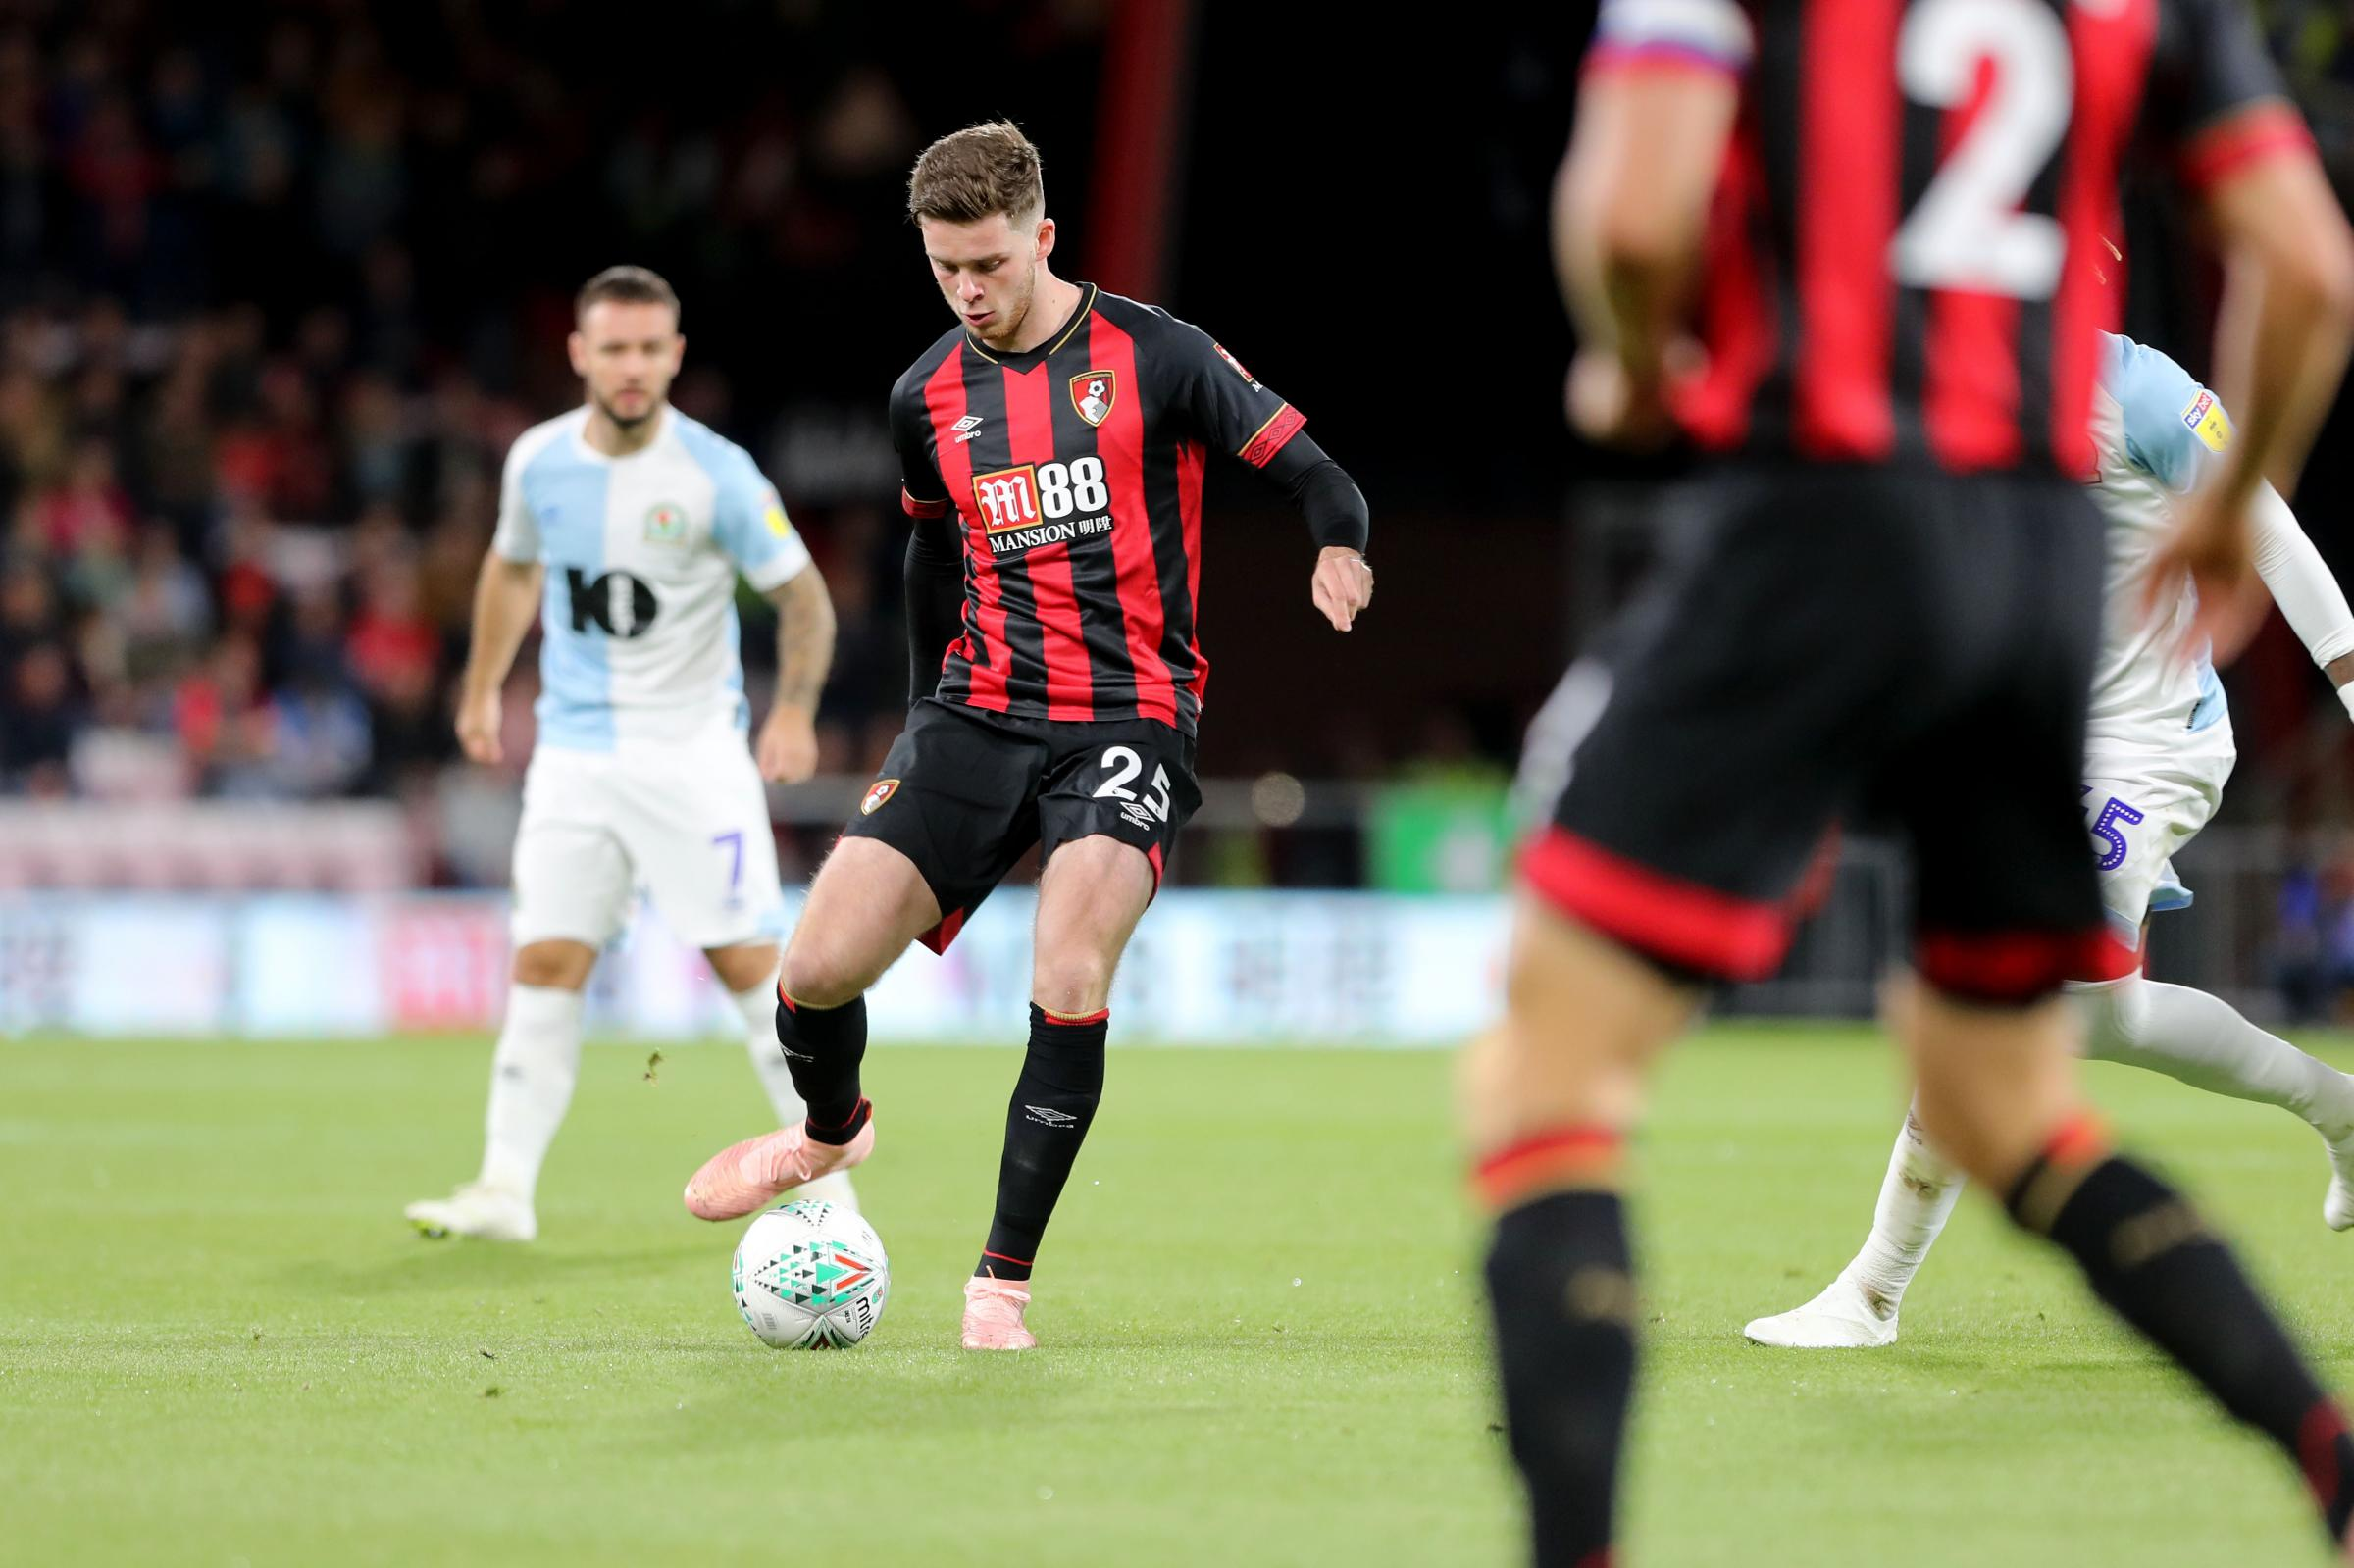 Simpson signs contract extension at Cherries